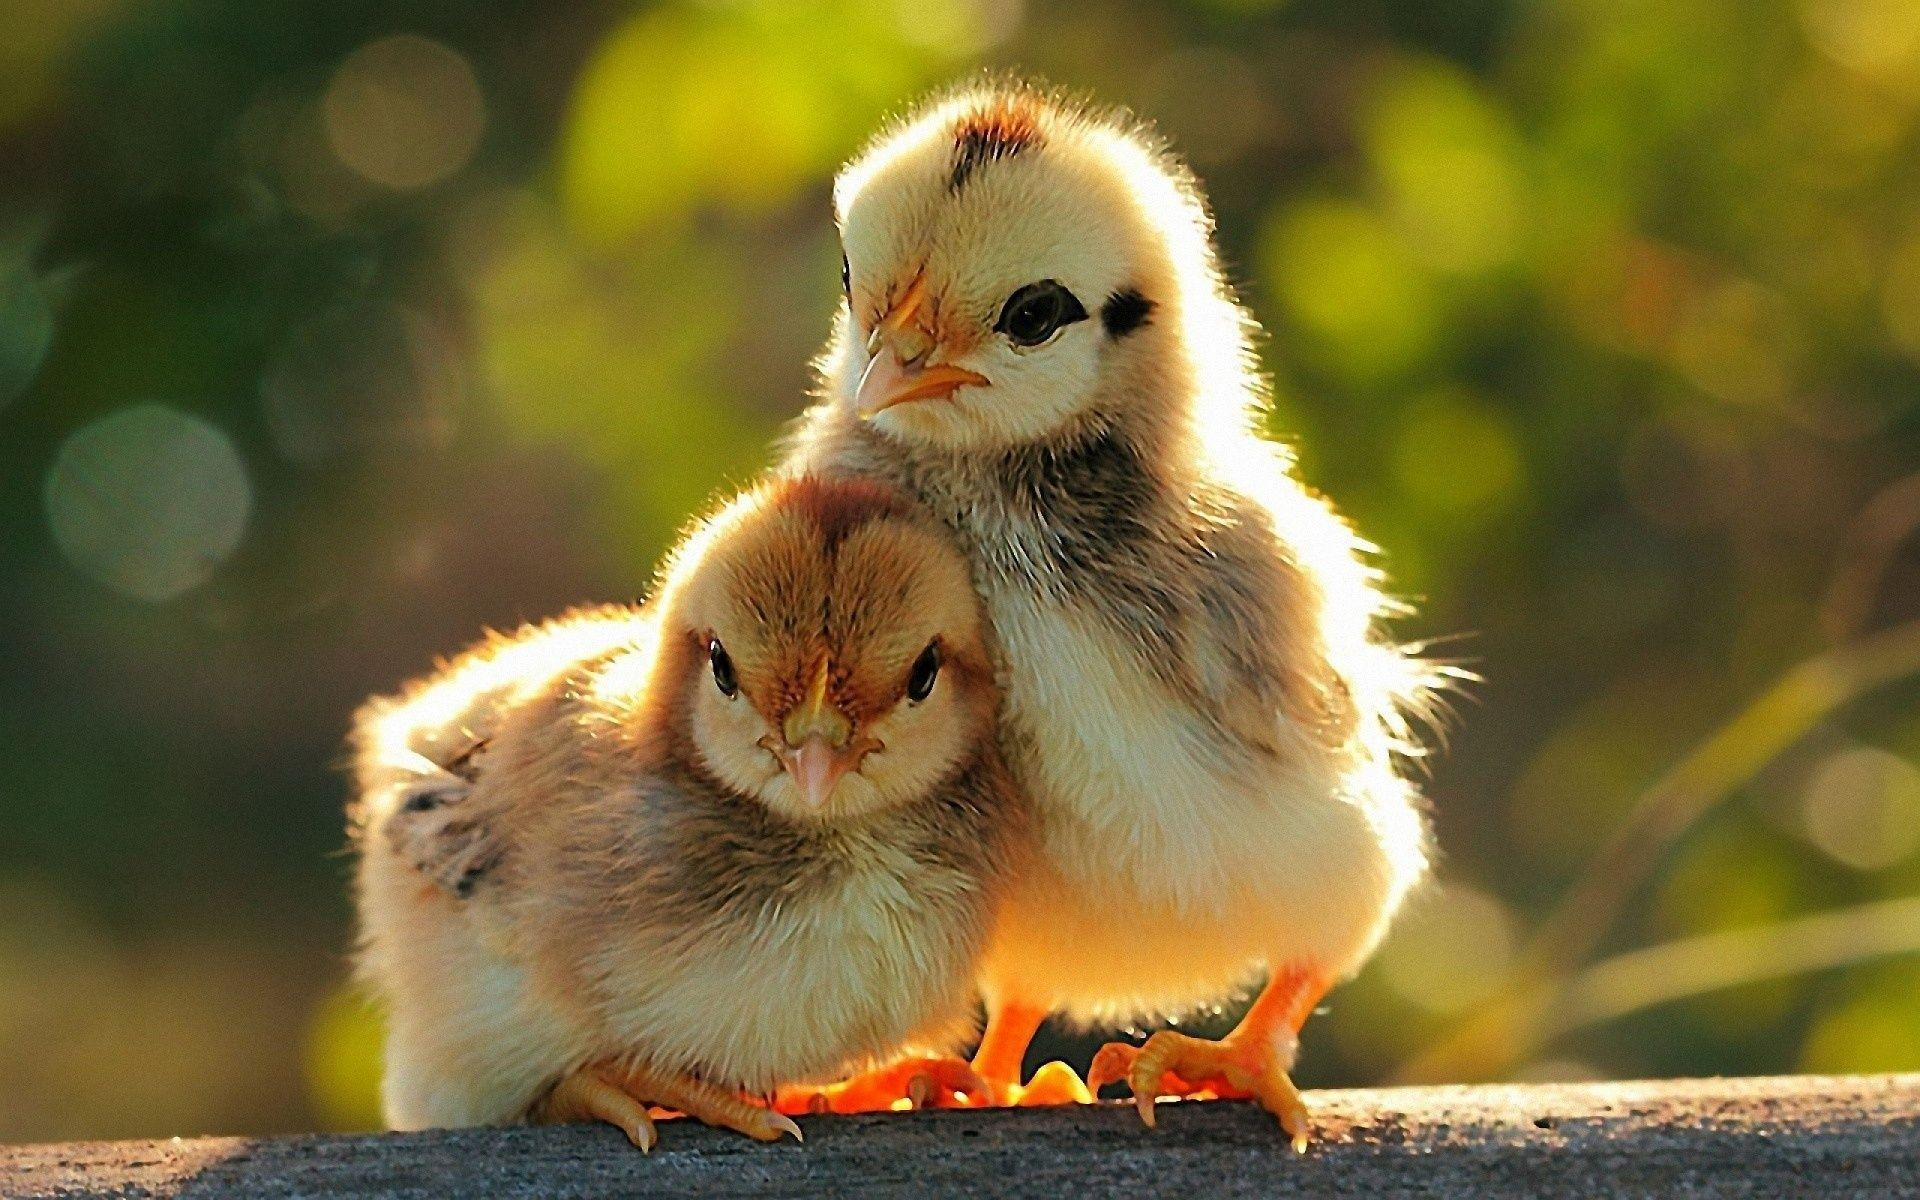 Birds Chicken HD Wallpapers Images And Photos Gallery Free Download